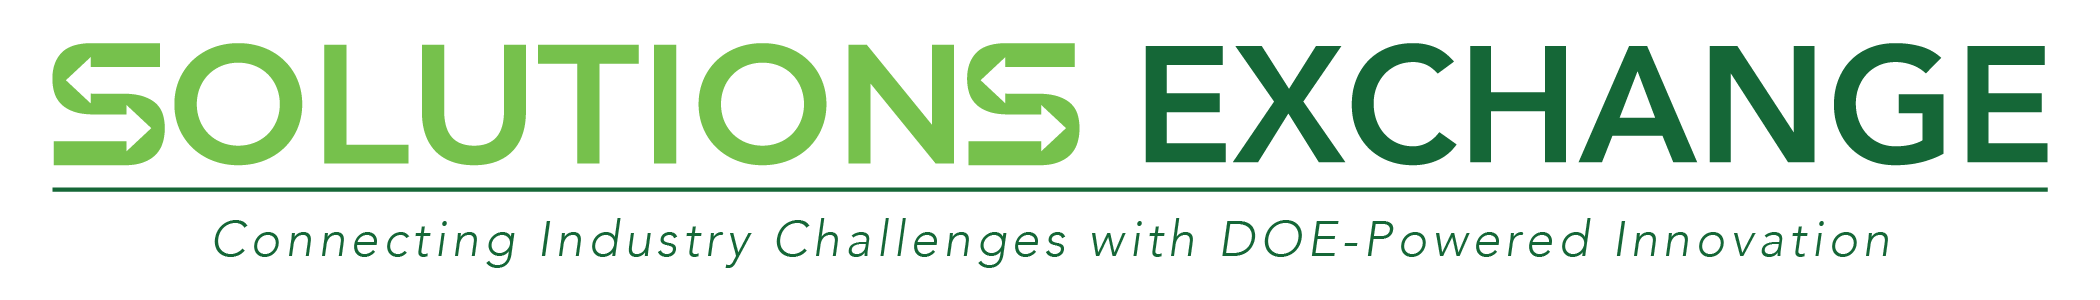 logo for the solutions exchange. green text saying solutions exchange